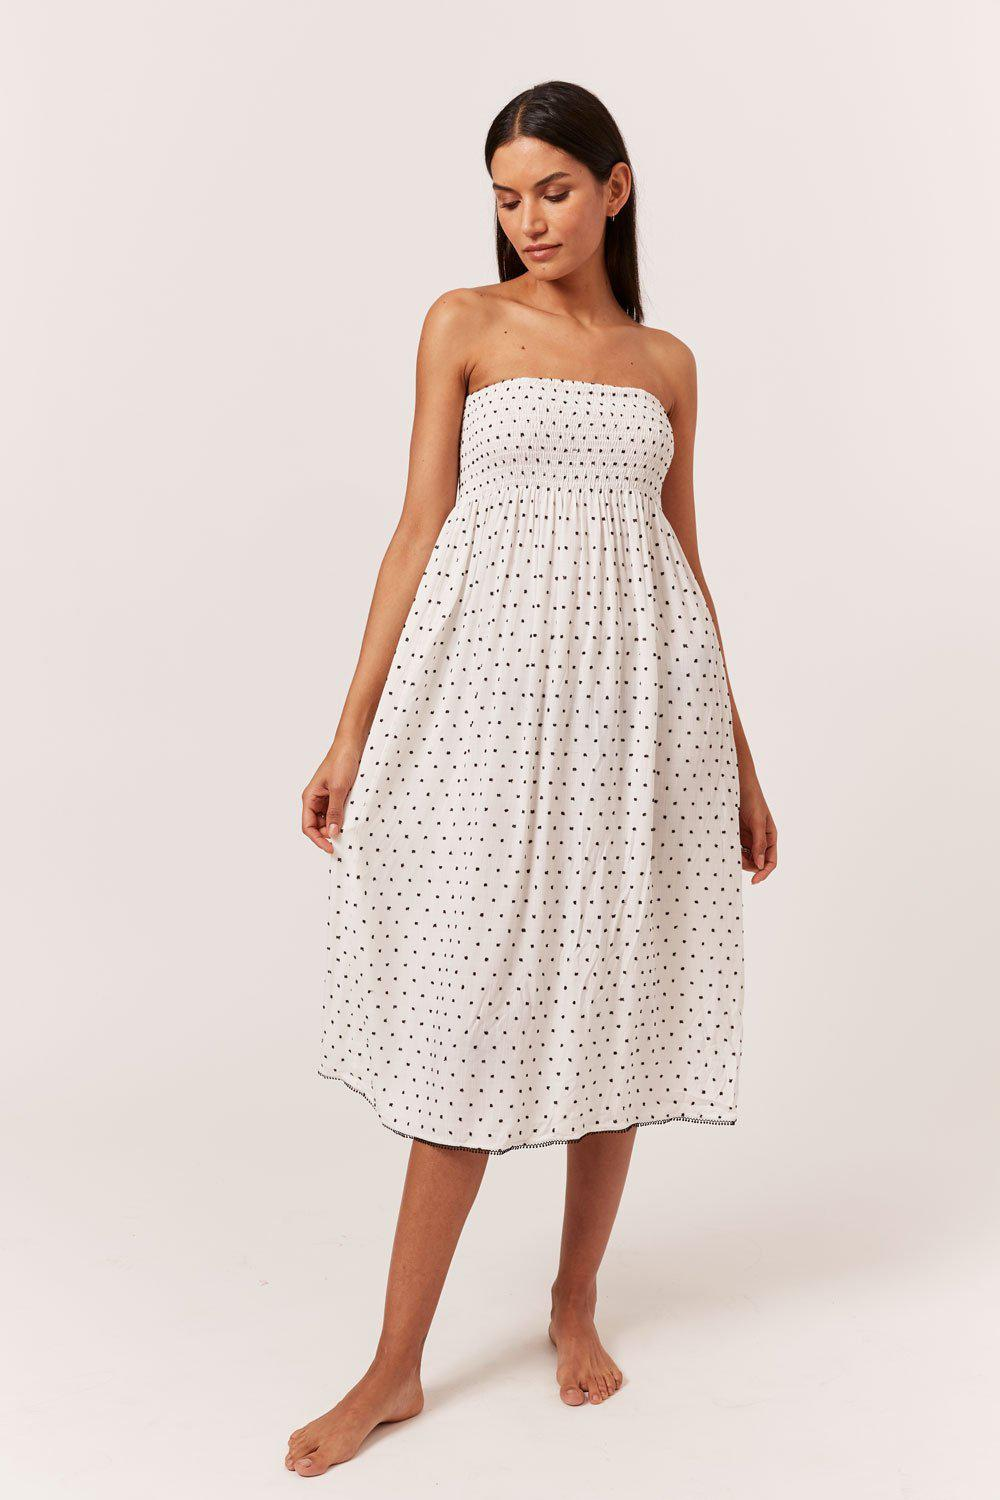 The Willow Dress 4